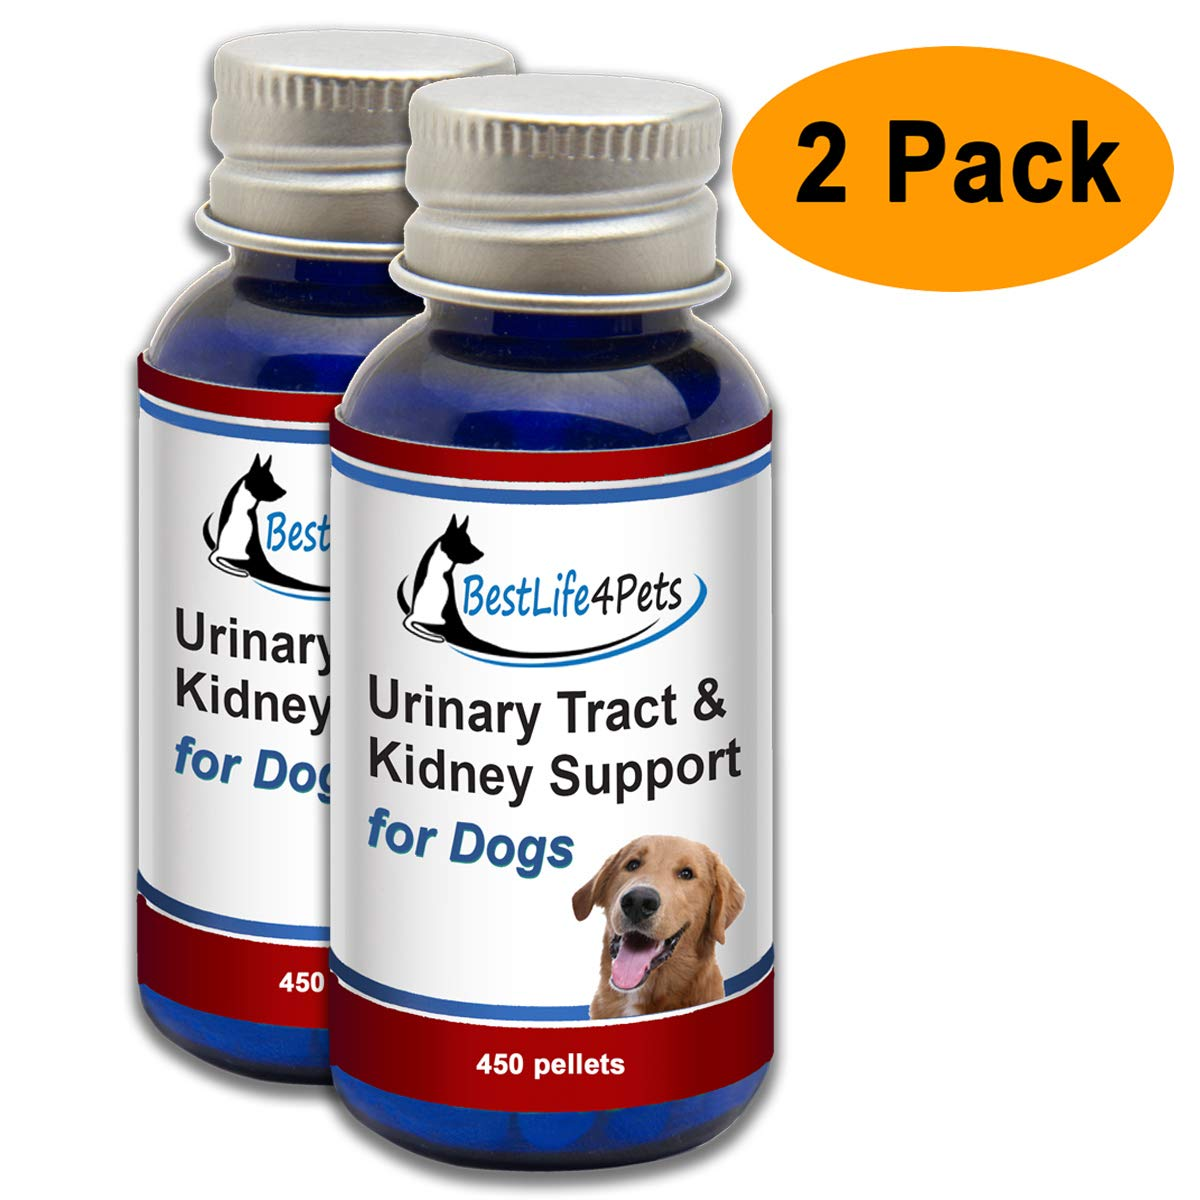 BestLife4Pets Dog UTI and Bladder Support - Natural Urinary Tract Infection Treatment Relieves Painful Urine Incontinence and Leaks, Reduces Bladder Infections, Prevents Pet Kidney Disease and Stones